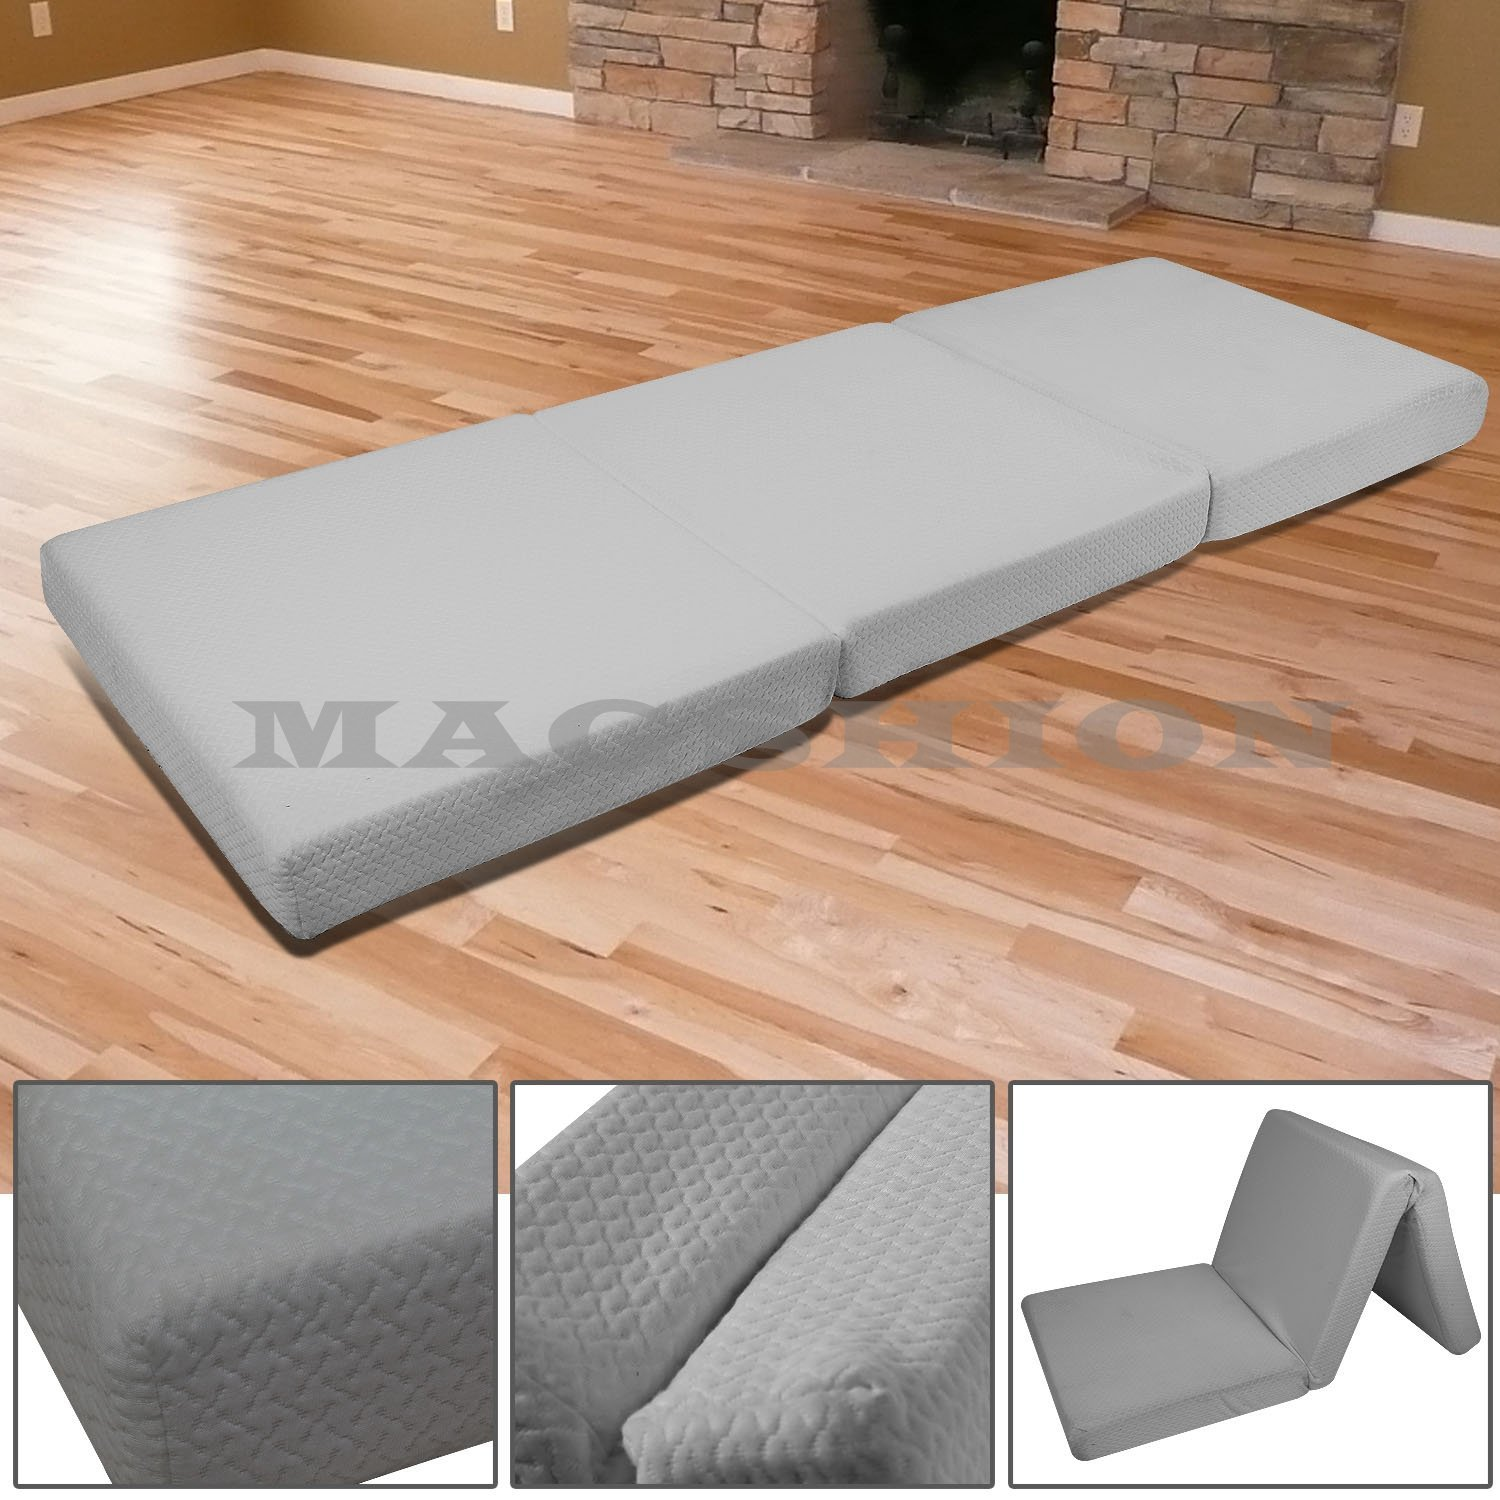 Magshion Memory Foam Mattresses Folding Bed Single 27'', Dark Grey